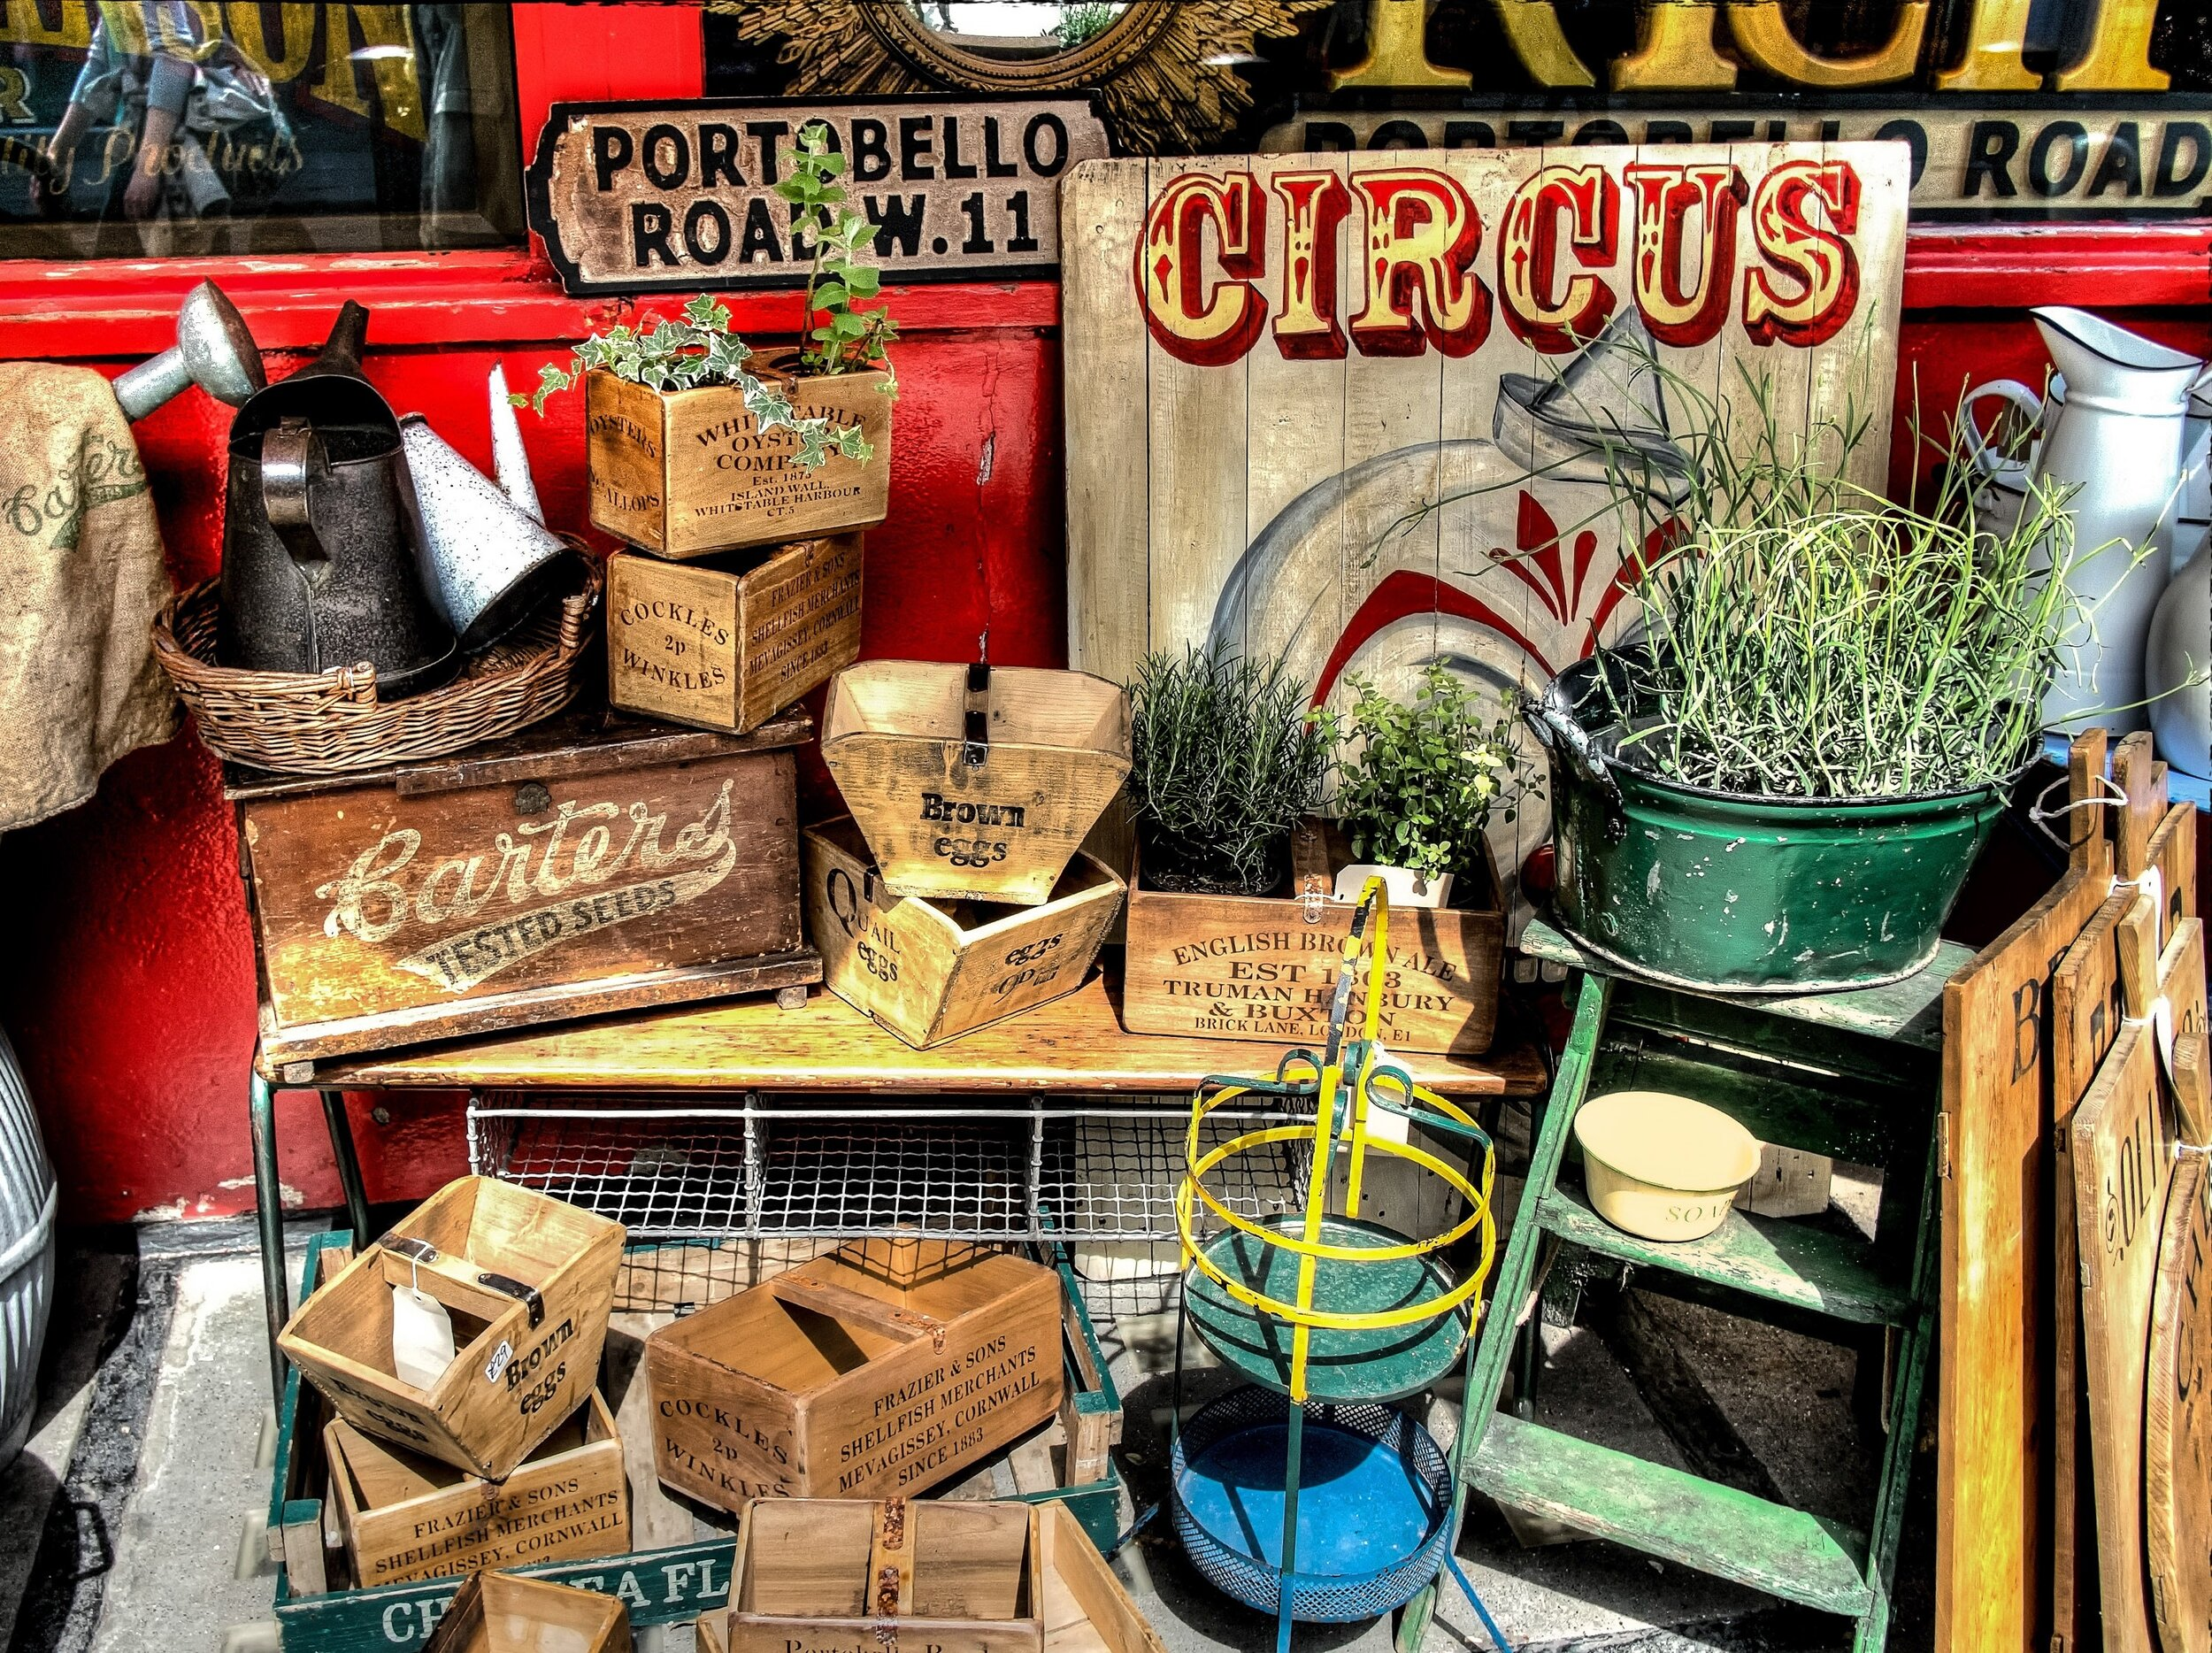 Portobello-road-assembly-hotel-london-piccadilly-circus-covent-garden-leicester-square.jpg